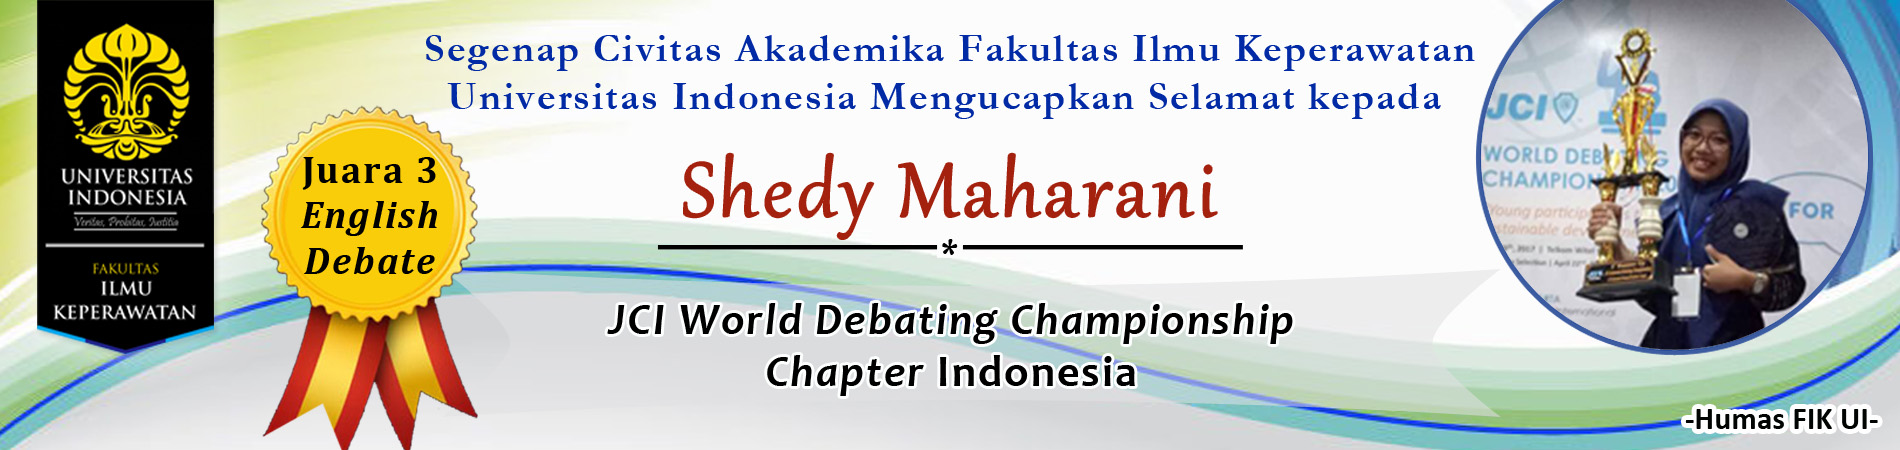 Web-Banner-Juara-3-English-Debate